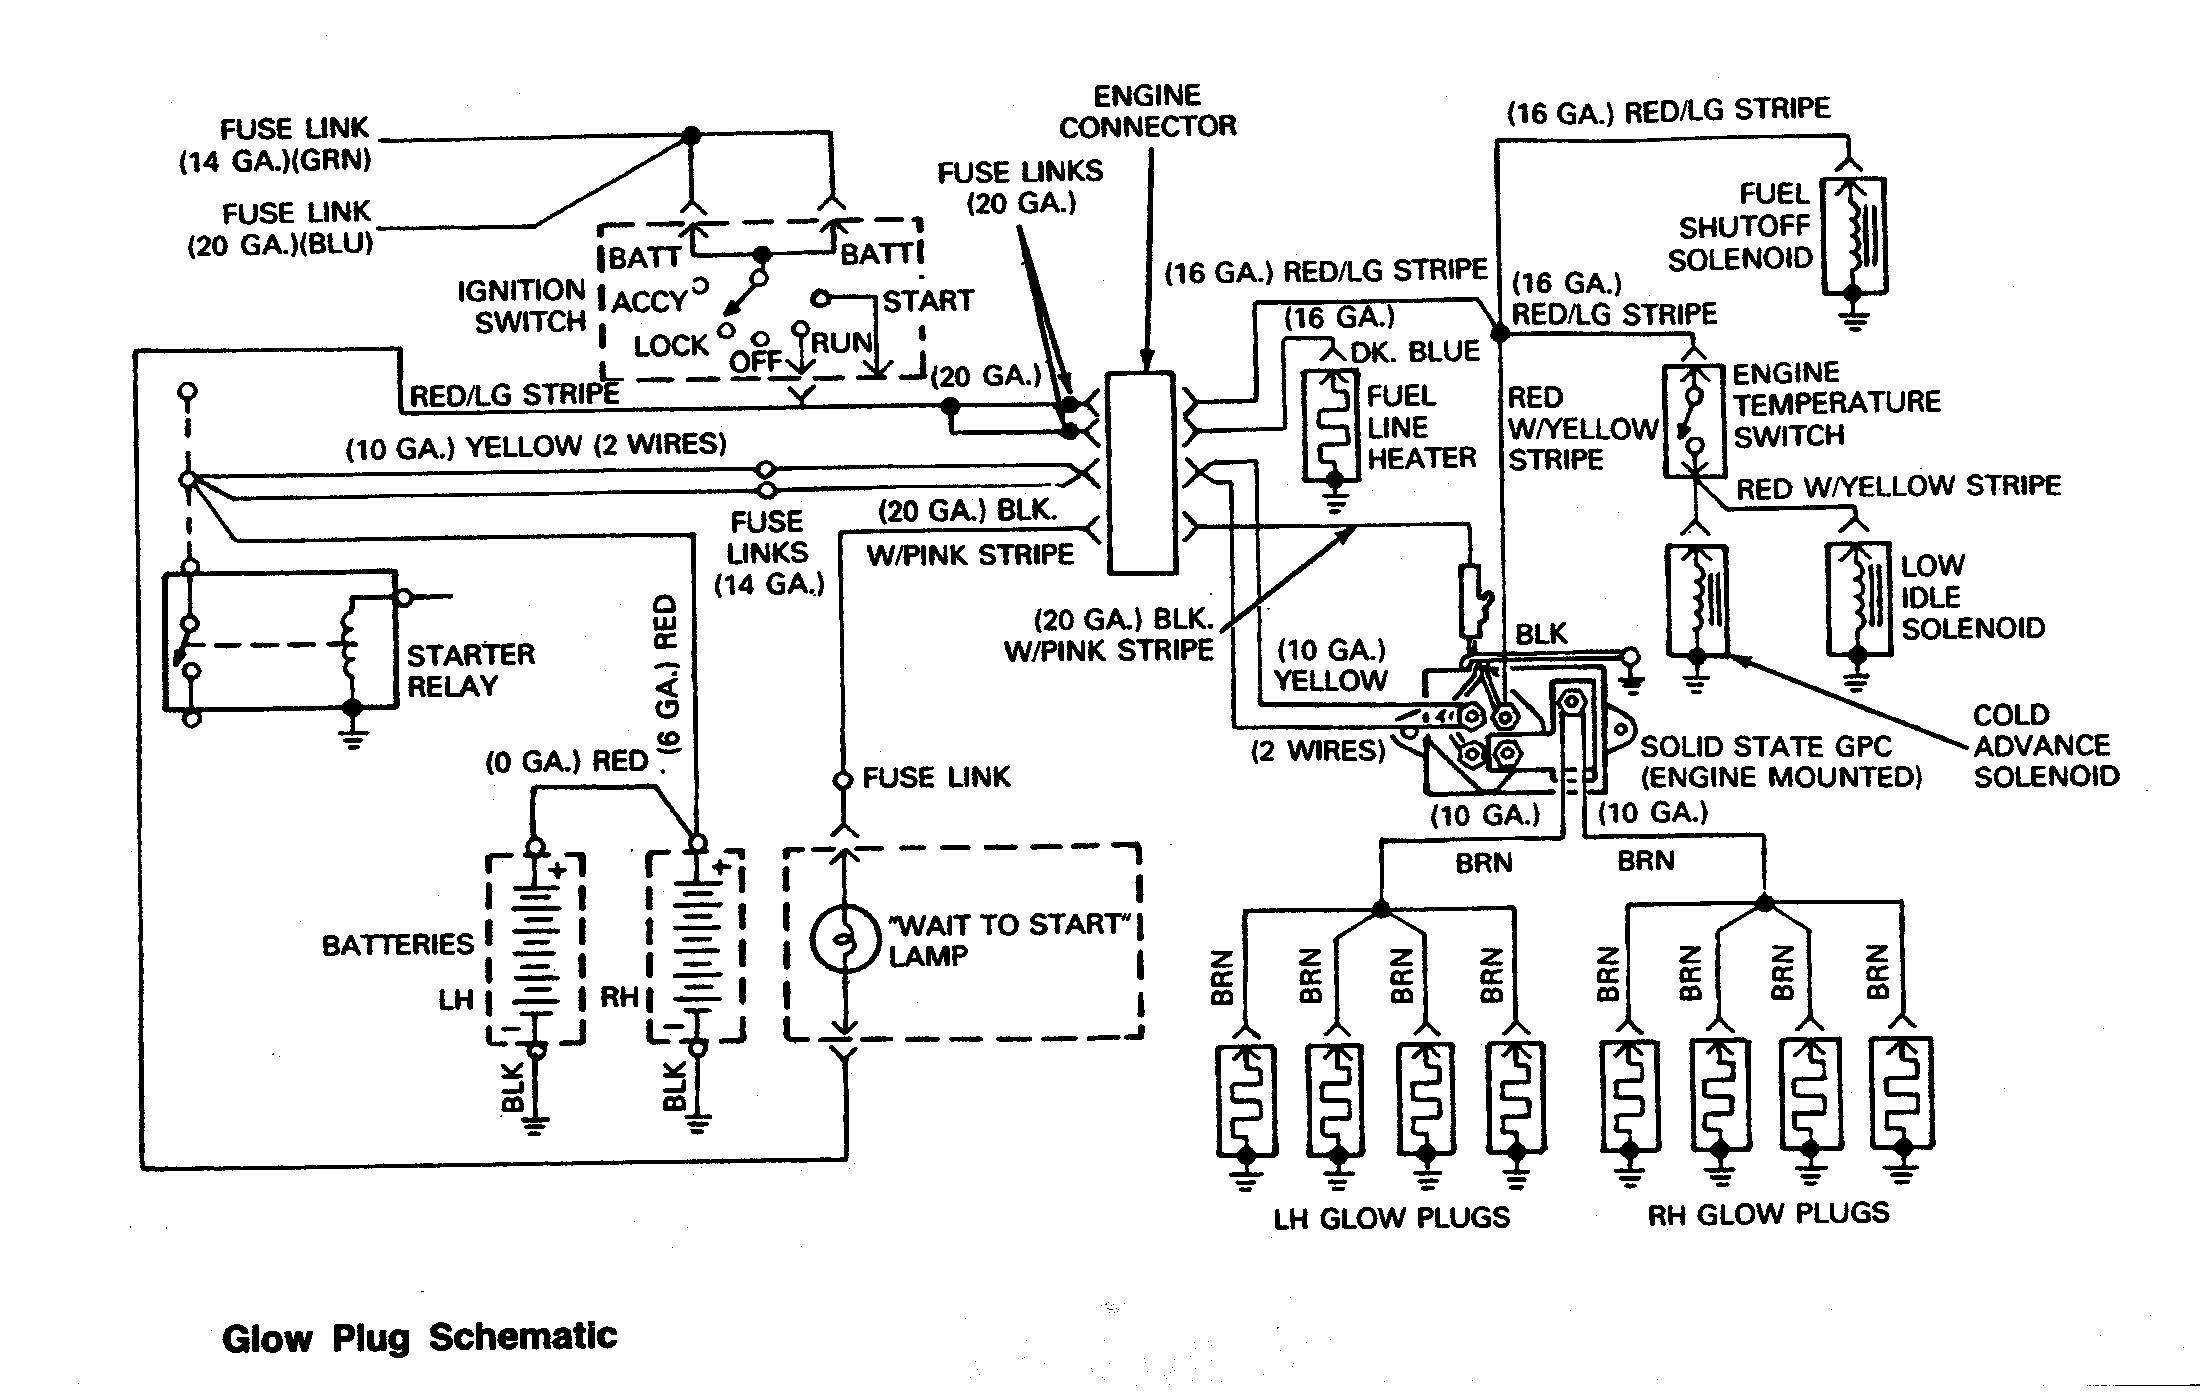 engine_glow_plug jet boat wiring diagram boat light wiring diagram \u2022 wiring 2003 Nissan Altima Relay Diagram at soozxer.org